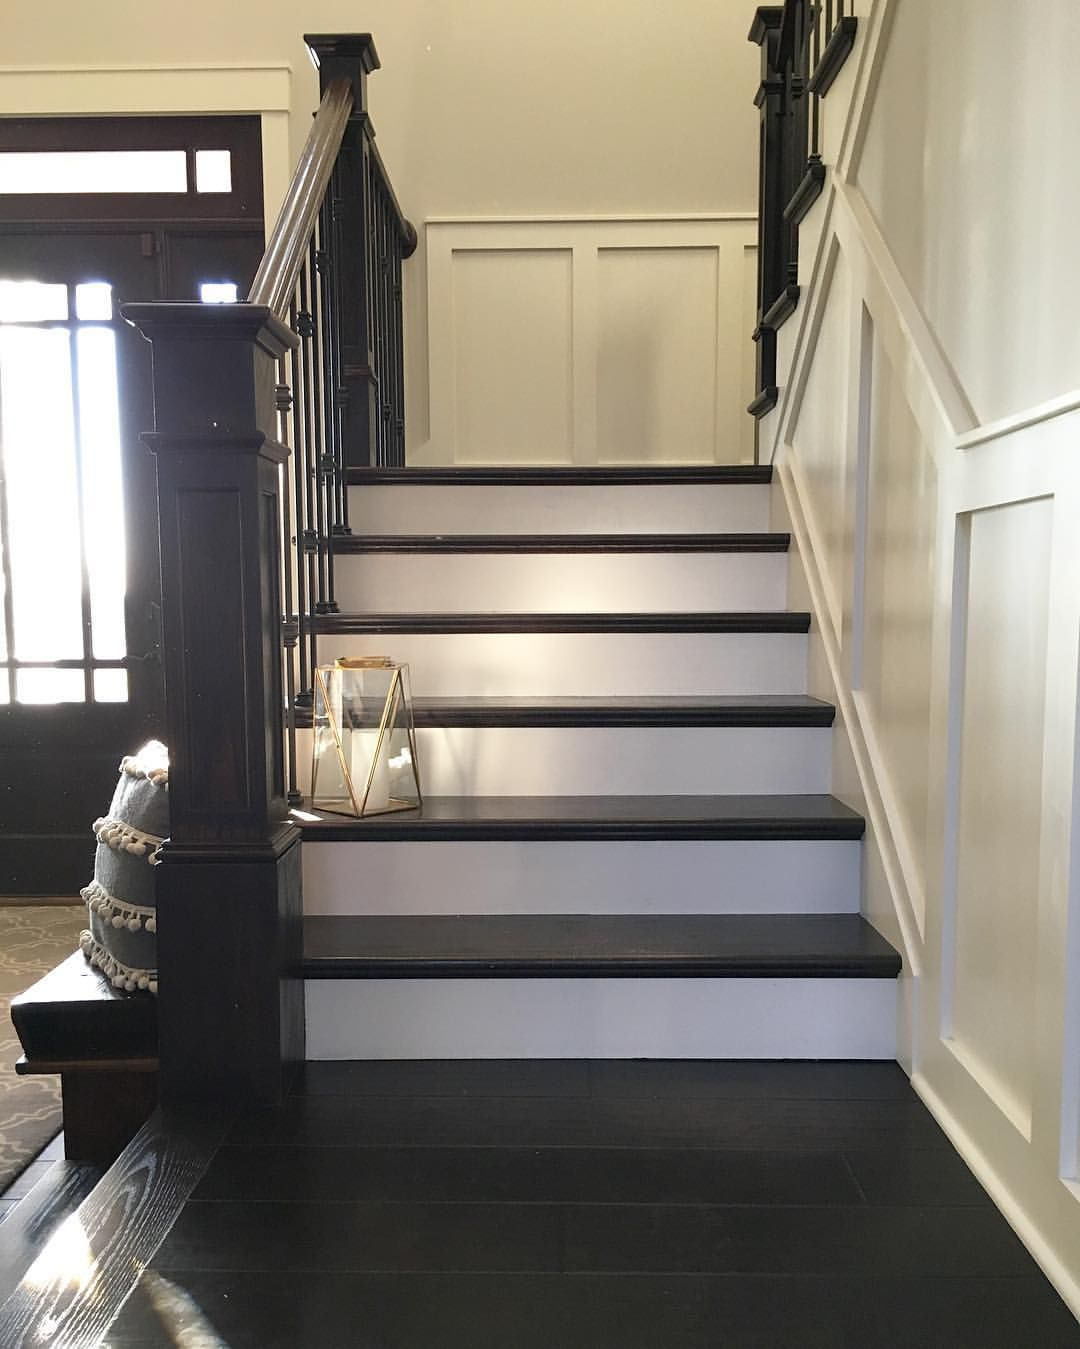 80 Modern Farmhouse Staircase Decor Ideas: Modern Farmhouse Painted And Stained Stairs With Brass